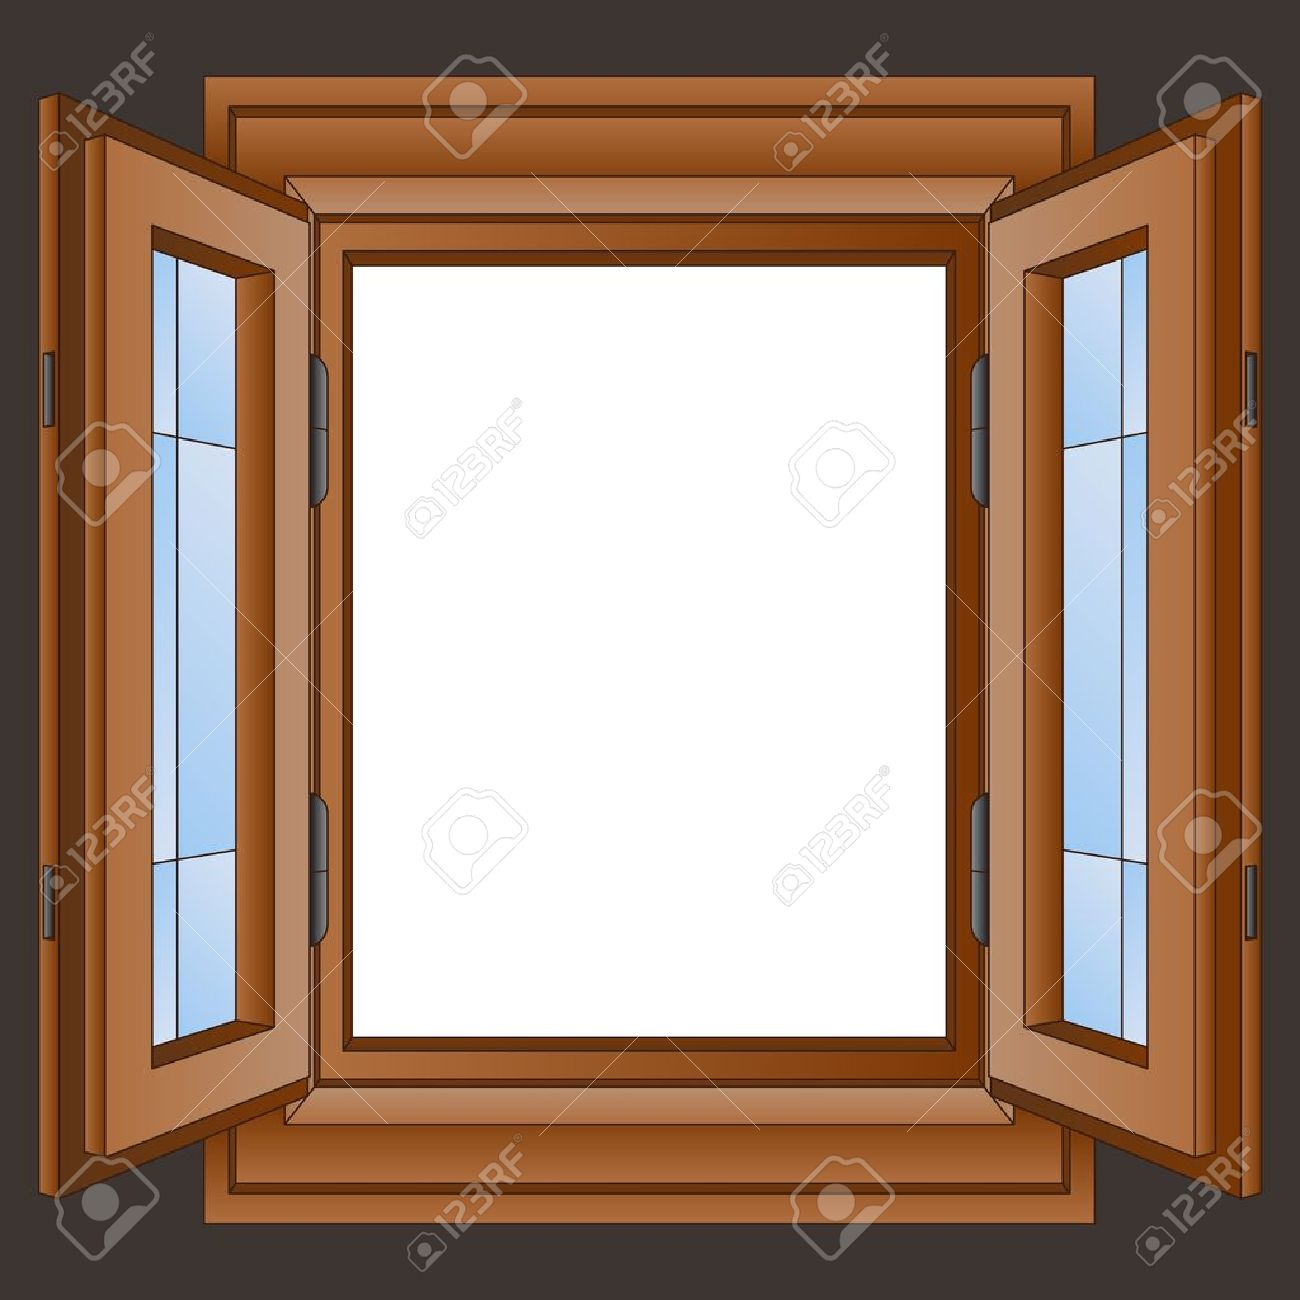 open wooden window frame in the wall vector illustration - 21227337